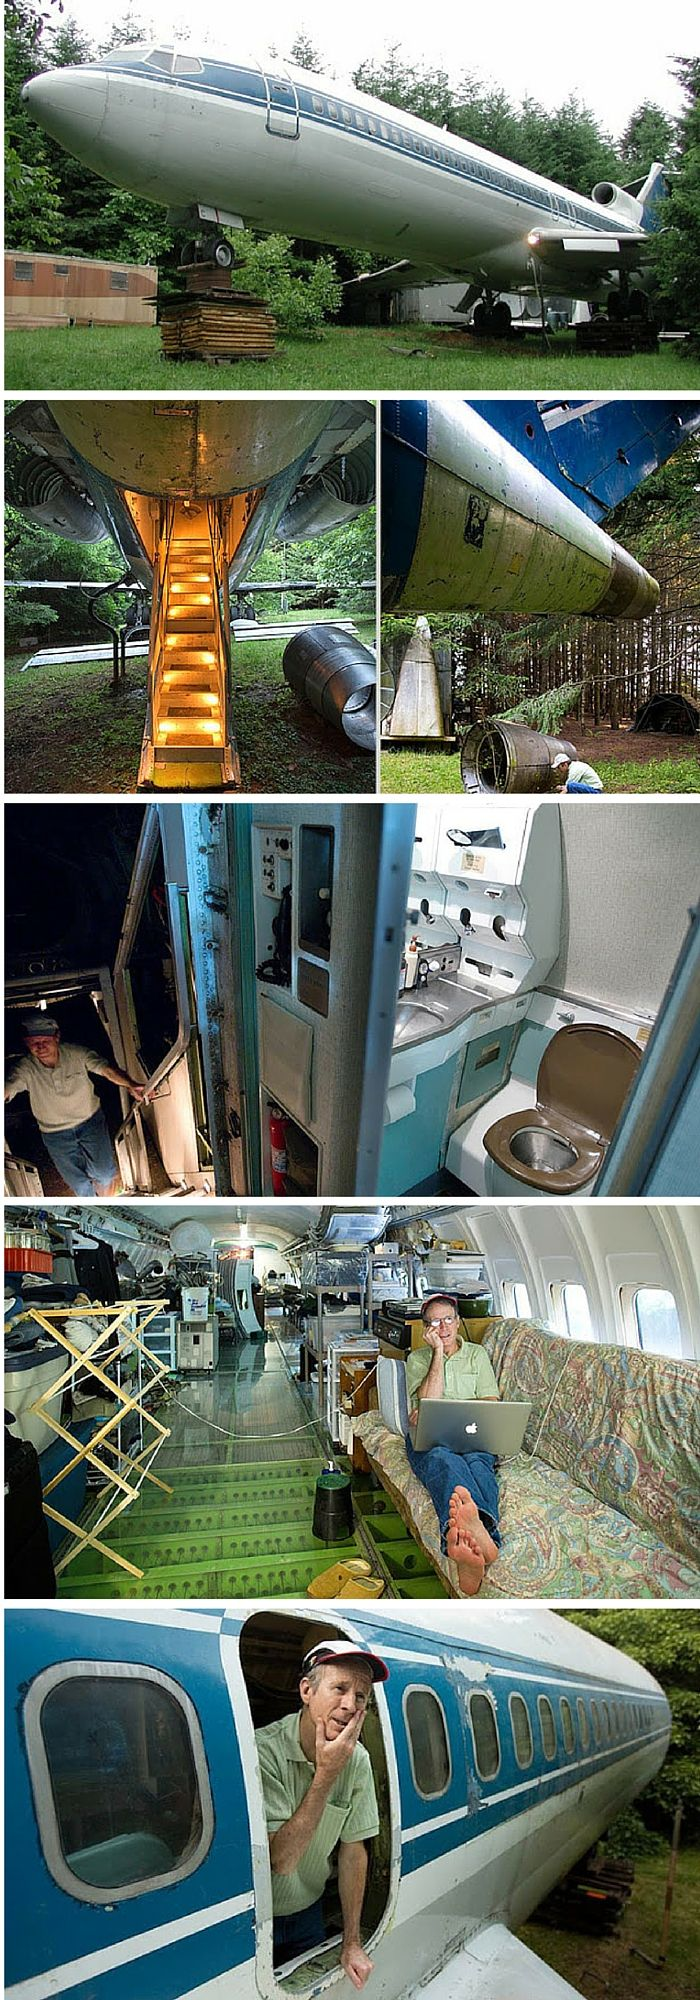 A 727 jetliner converted into a home in portland oregon alternative tiny homes pinterest - Container homes portland oregon ...